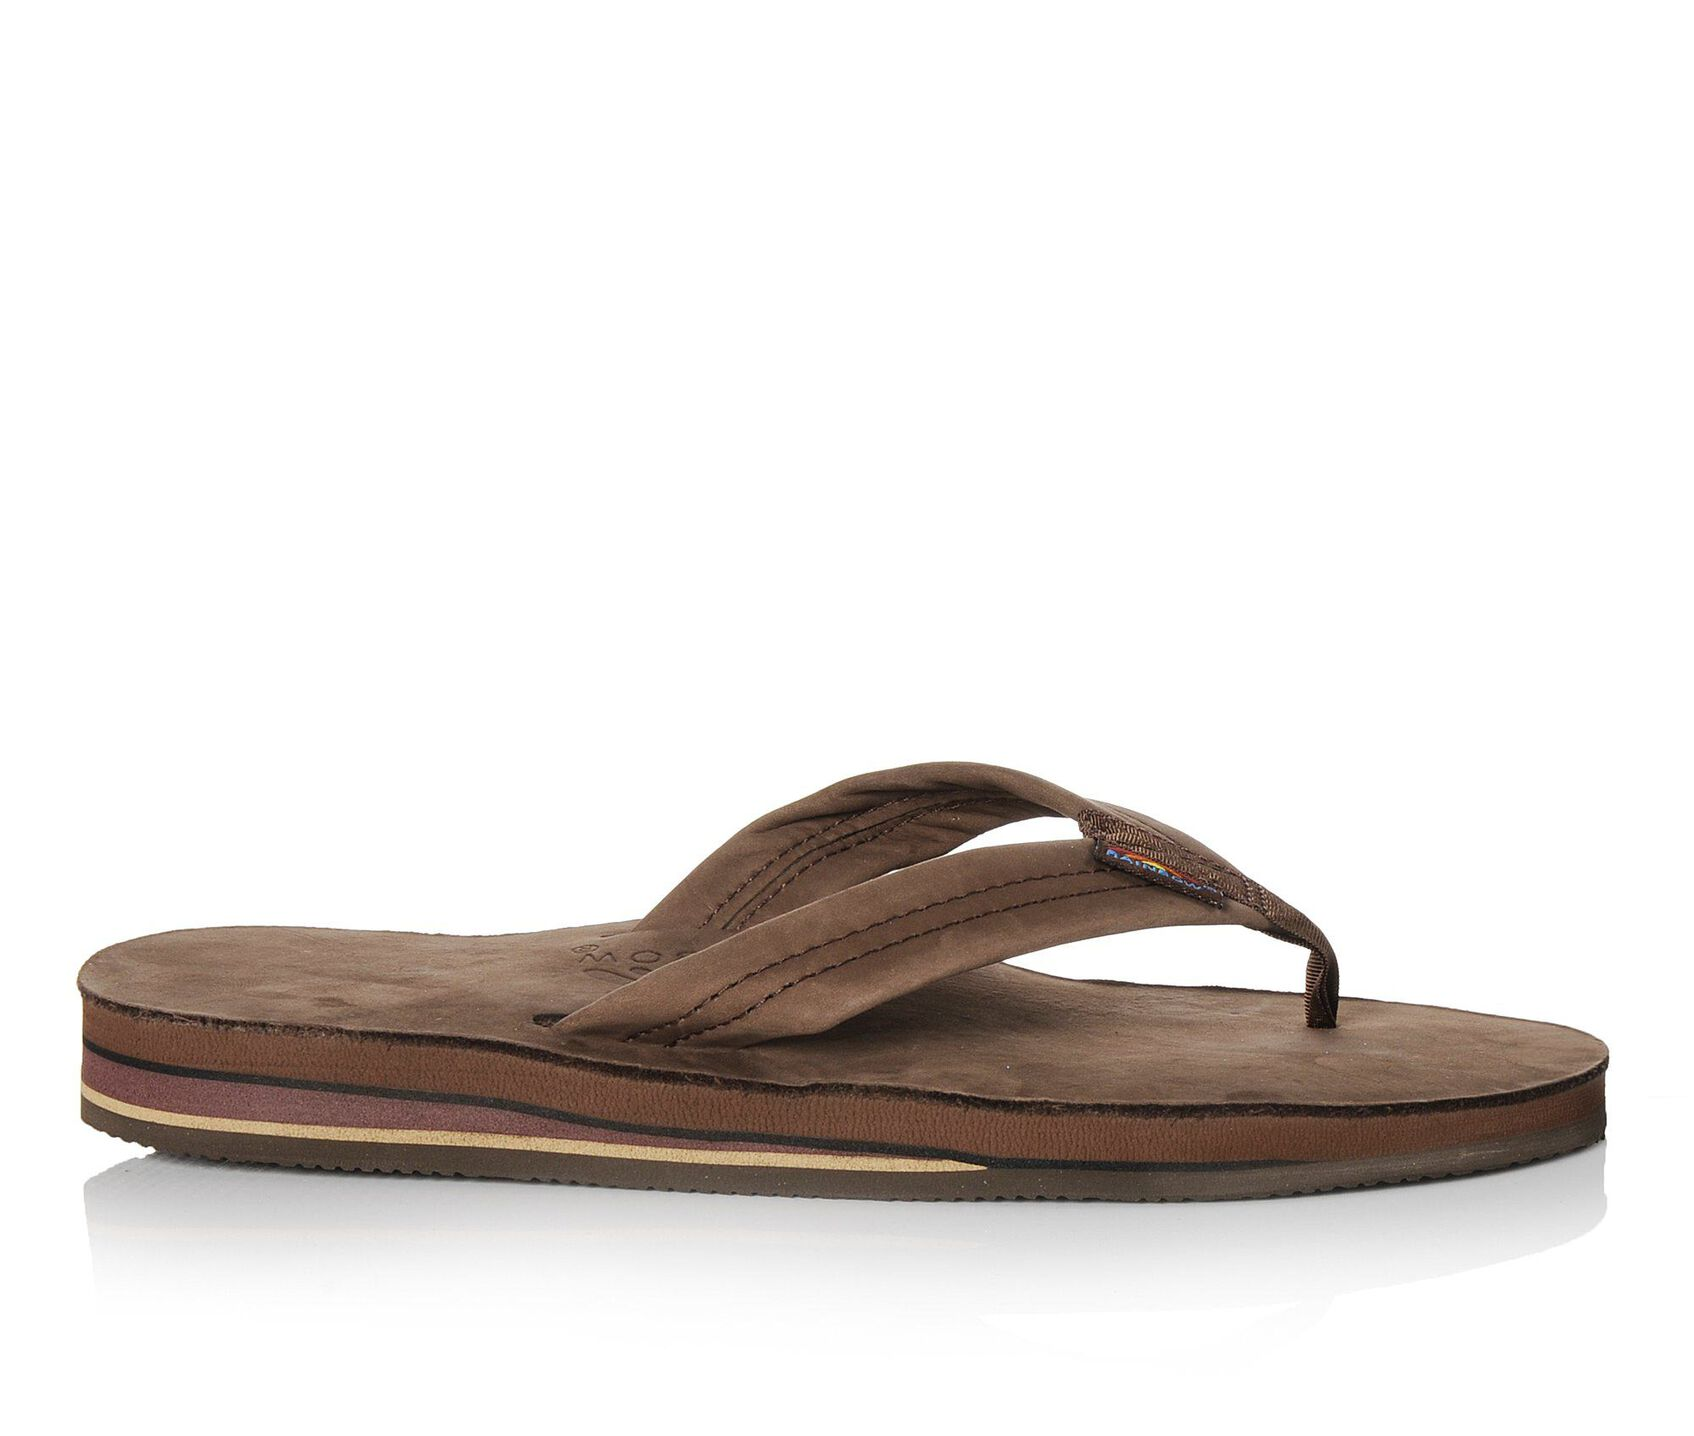 ... Rainbow Sandals Premier Leather Flip-Flops. Carousel Controls Previous e29e6c12f26f